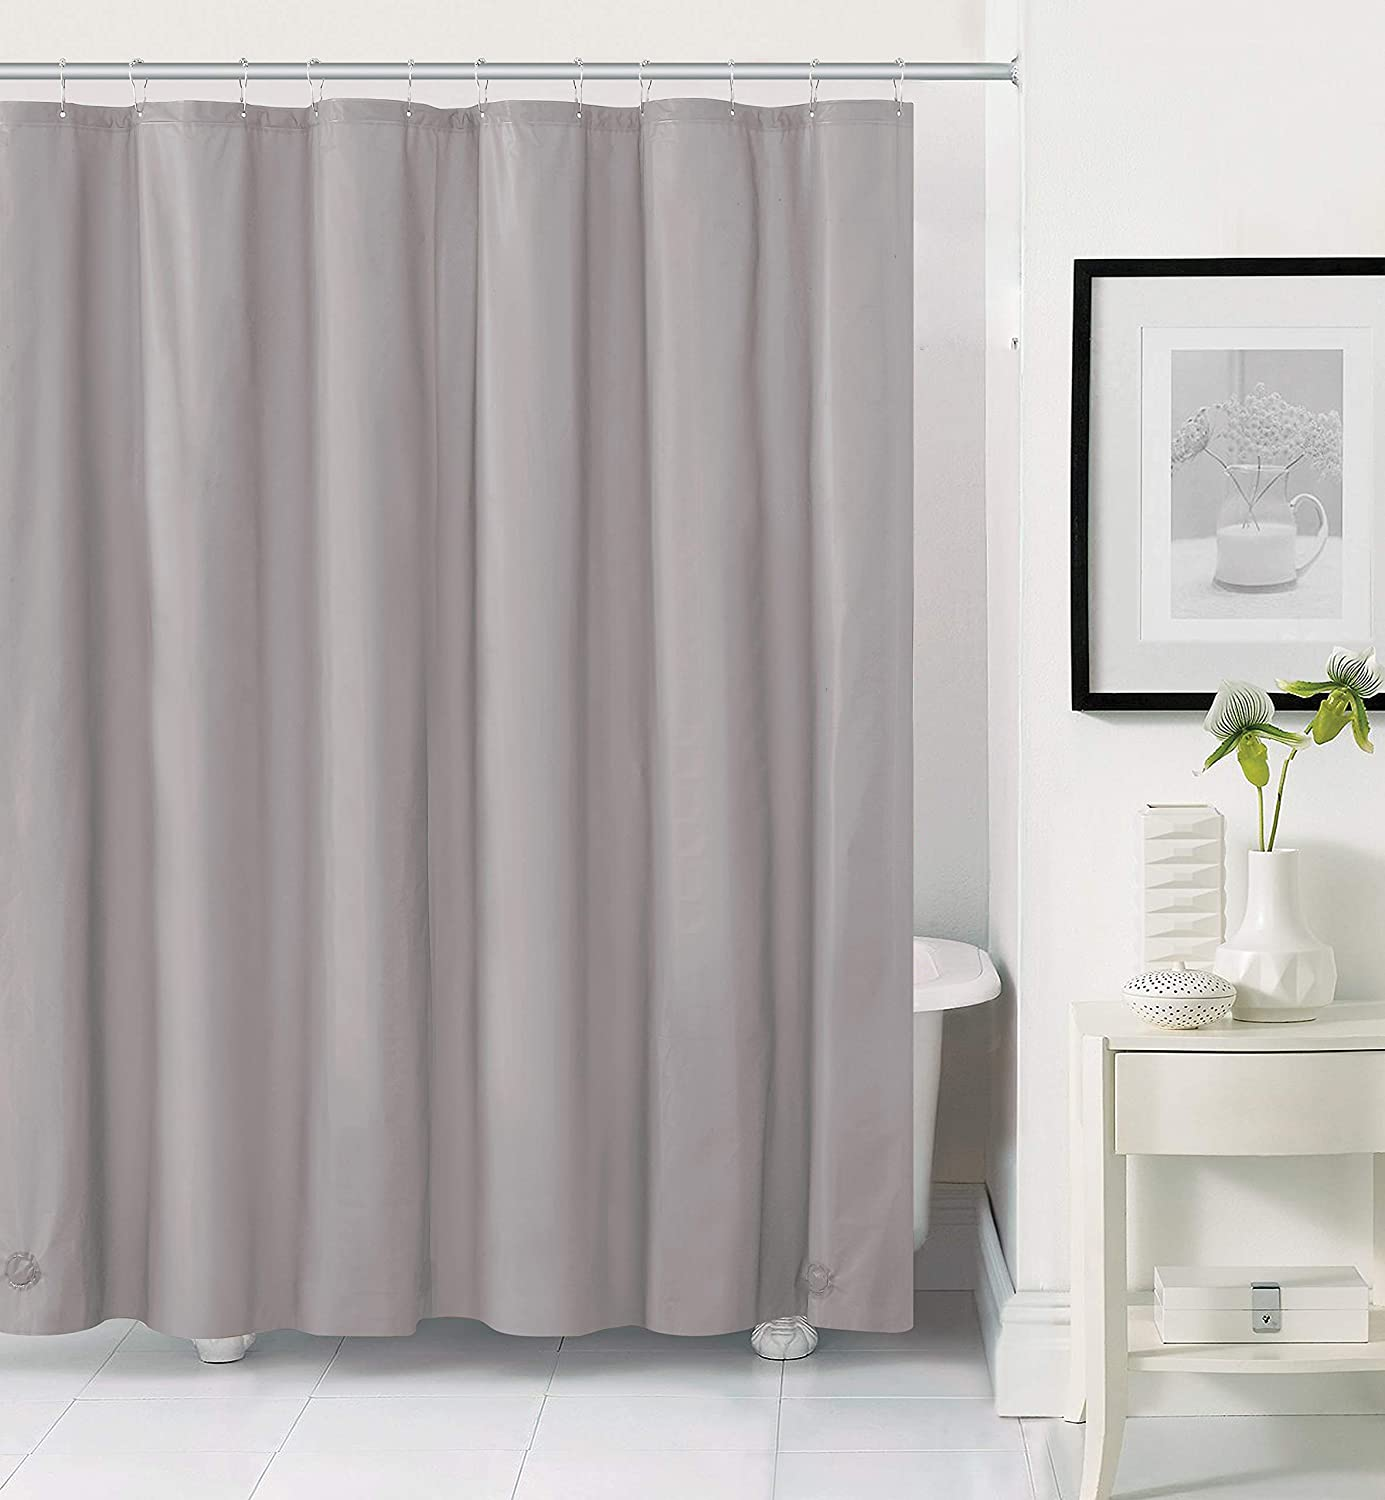 GoodGram Hotel Heavy Duty Premium PEVA Shower Curtain Liner with Rust Proof Metal Grommets - Assorted Colors (Silver)